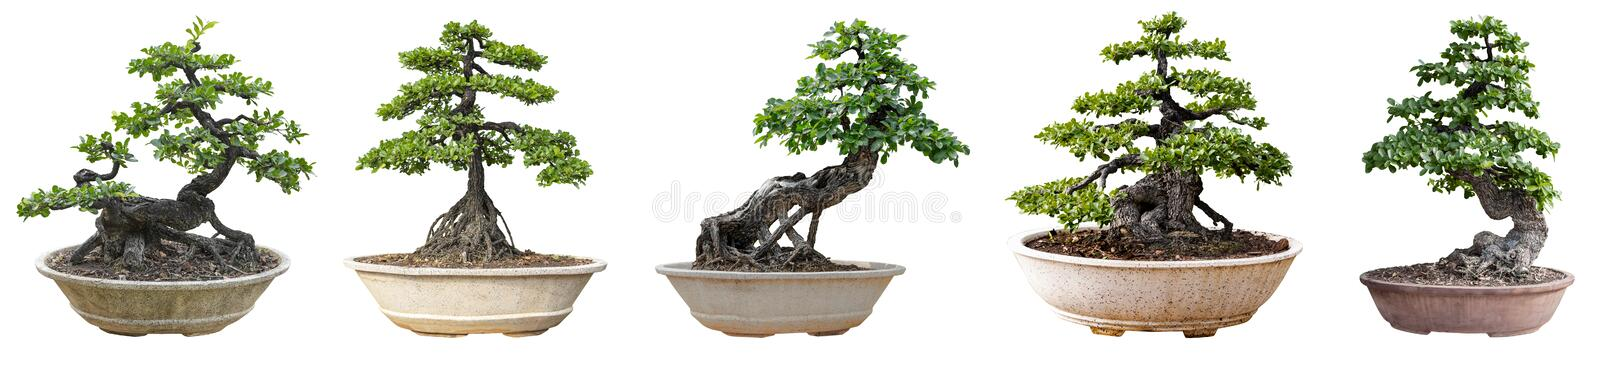 Bonsai trees isolated on white background. Its shrub is grown in a pot or ornamental tree in the garden stock photography